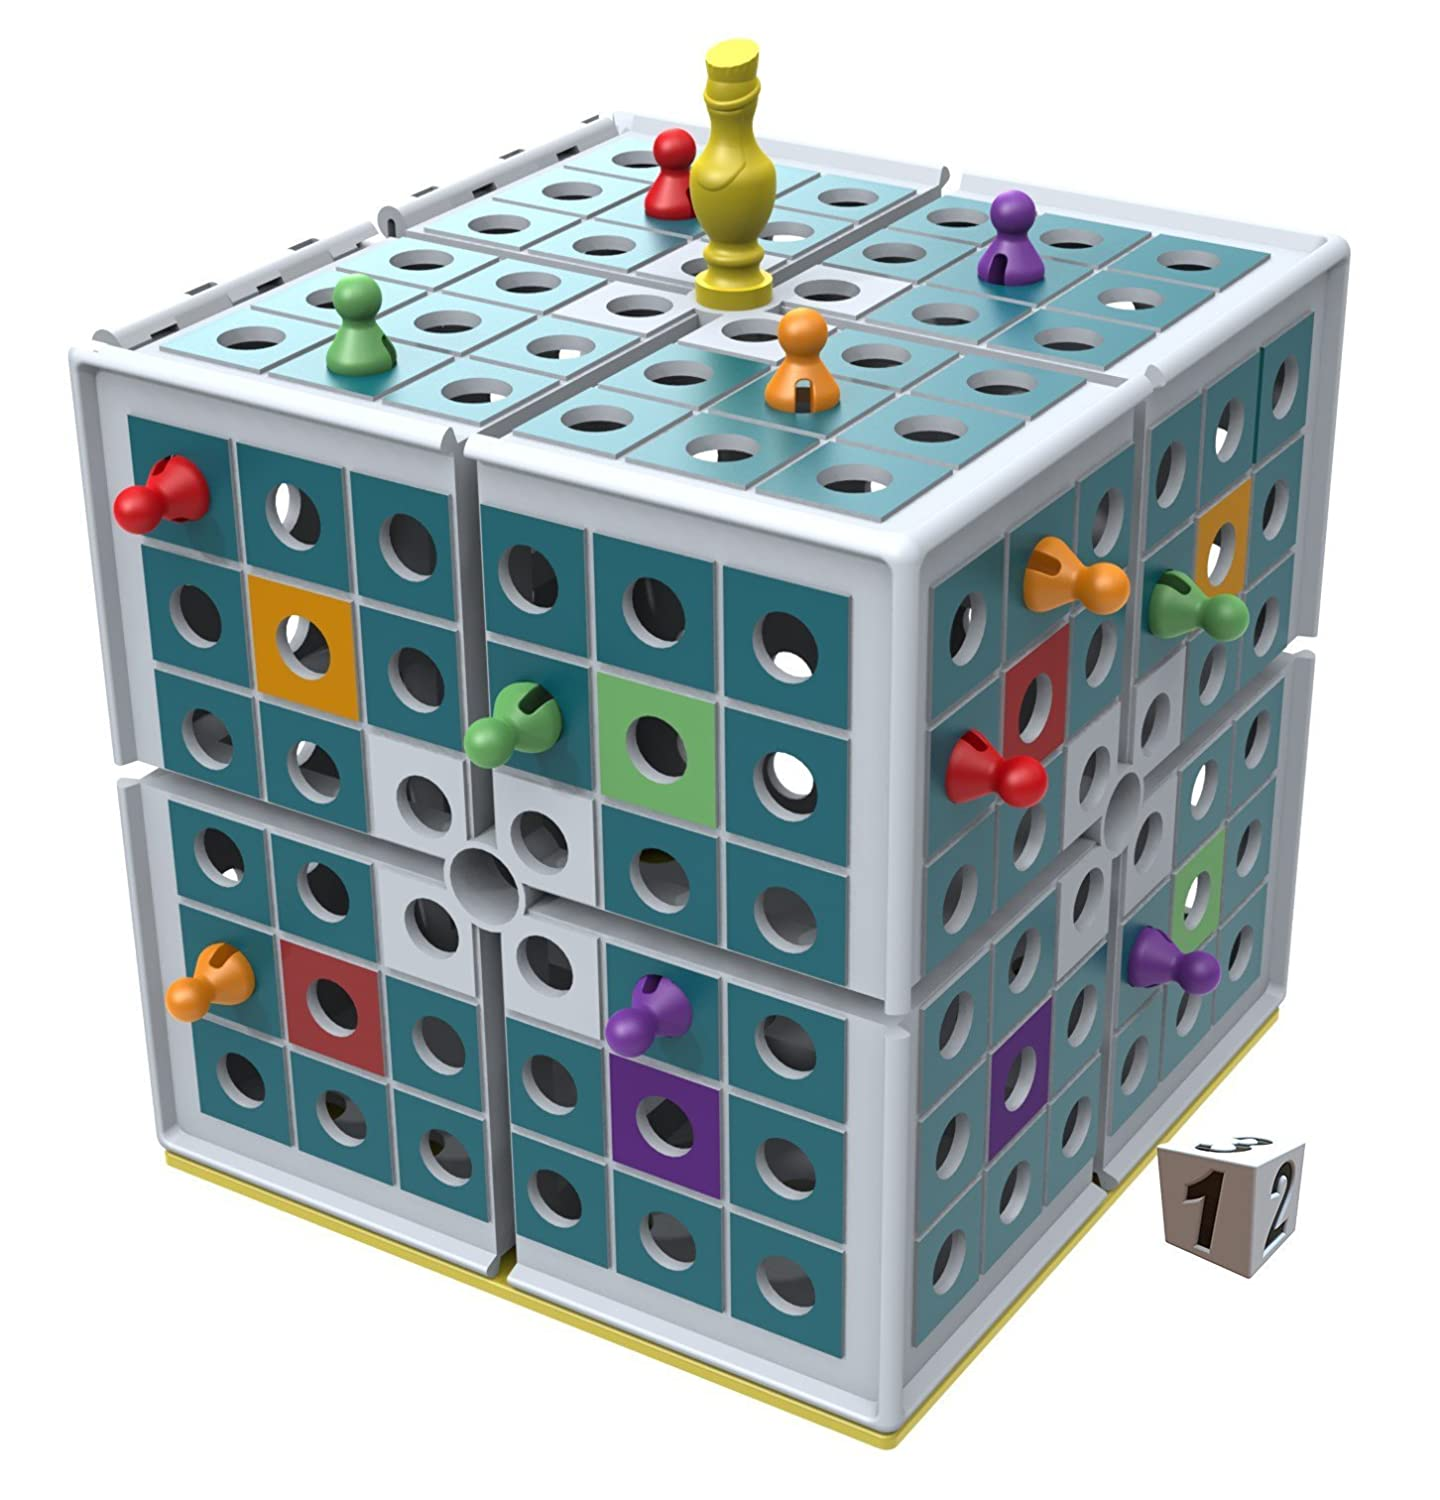 Squashed 3D Strategy Board Game